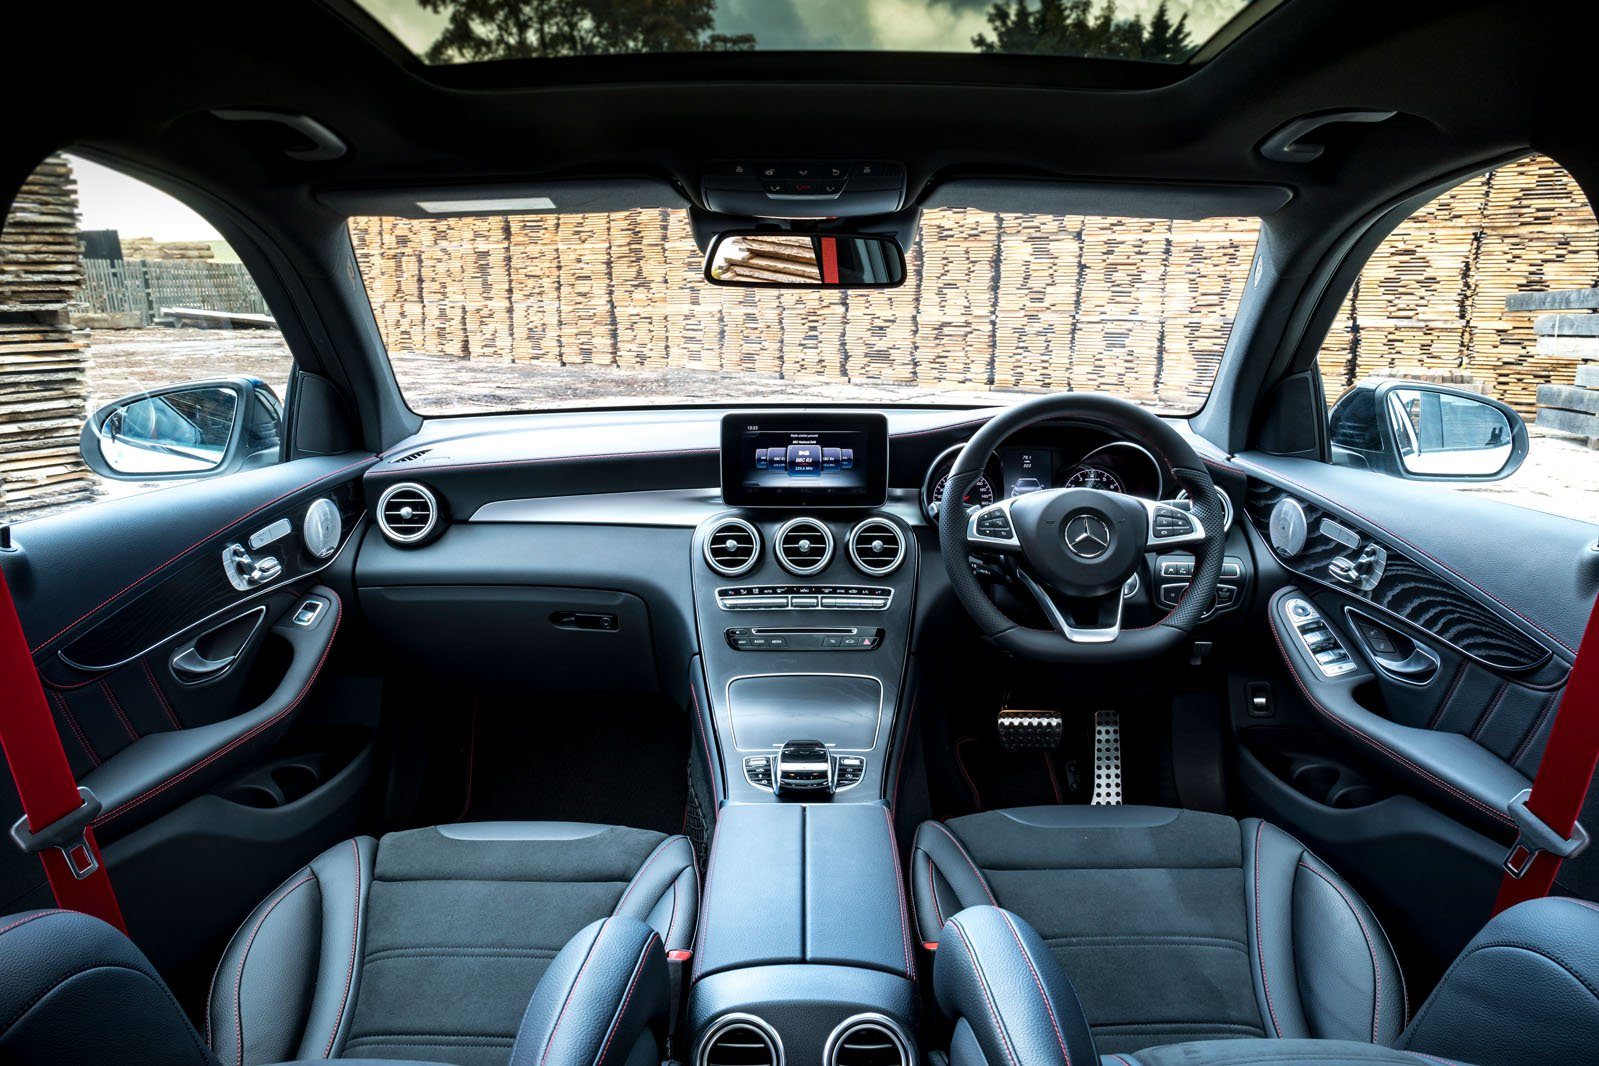 Mercedes-AMG GLC 43 - interior